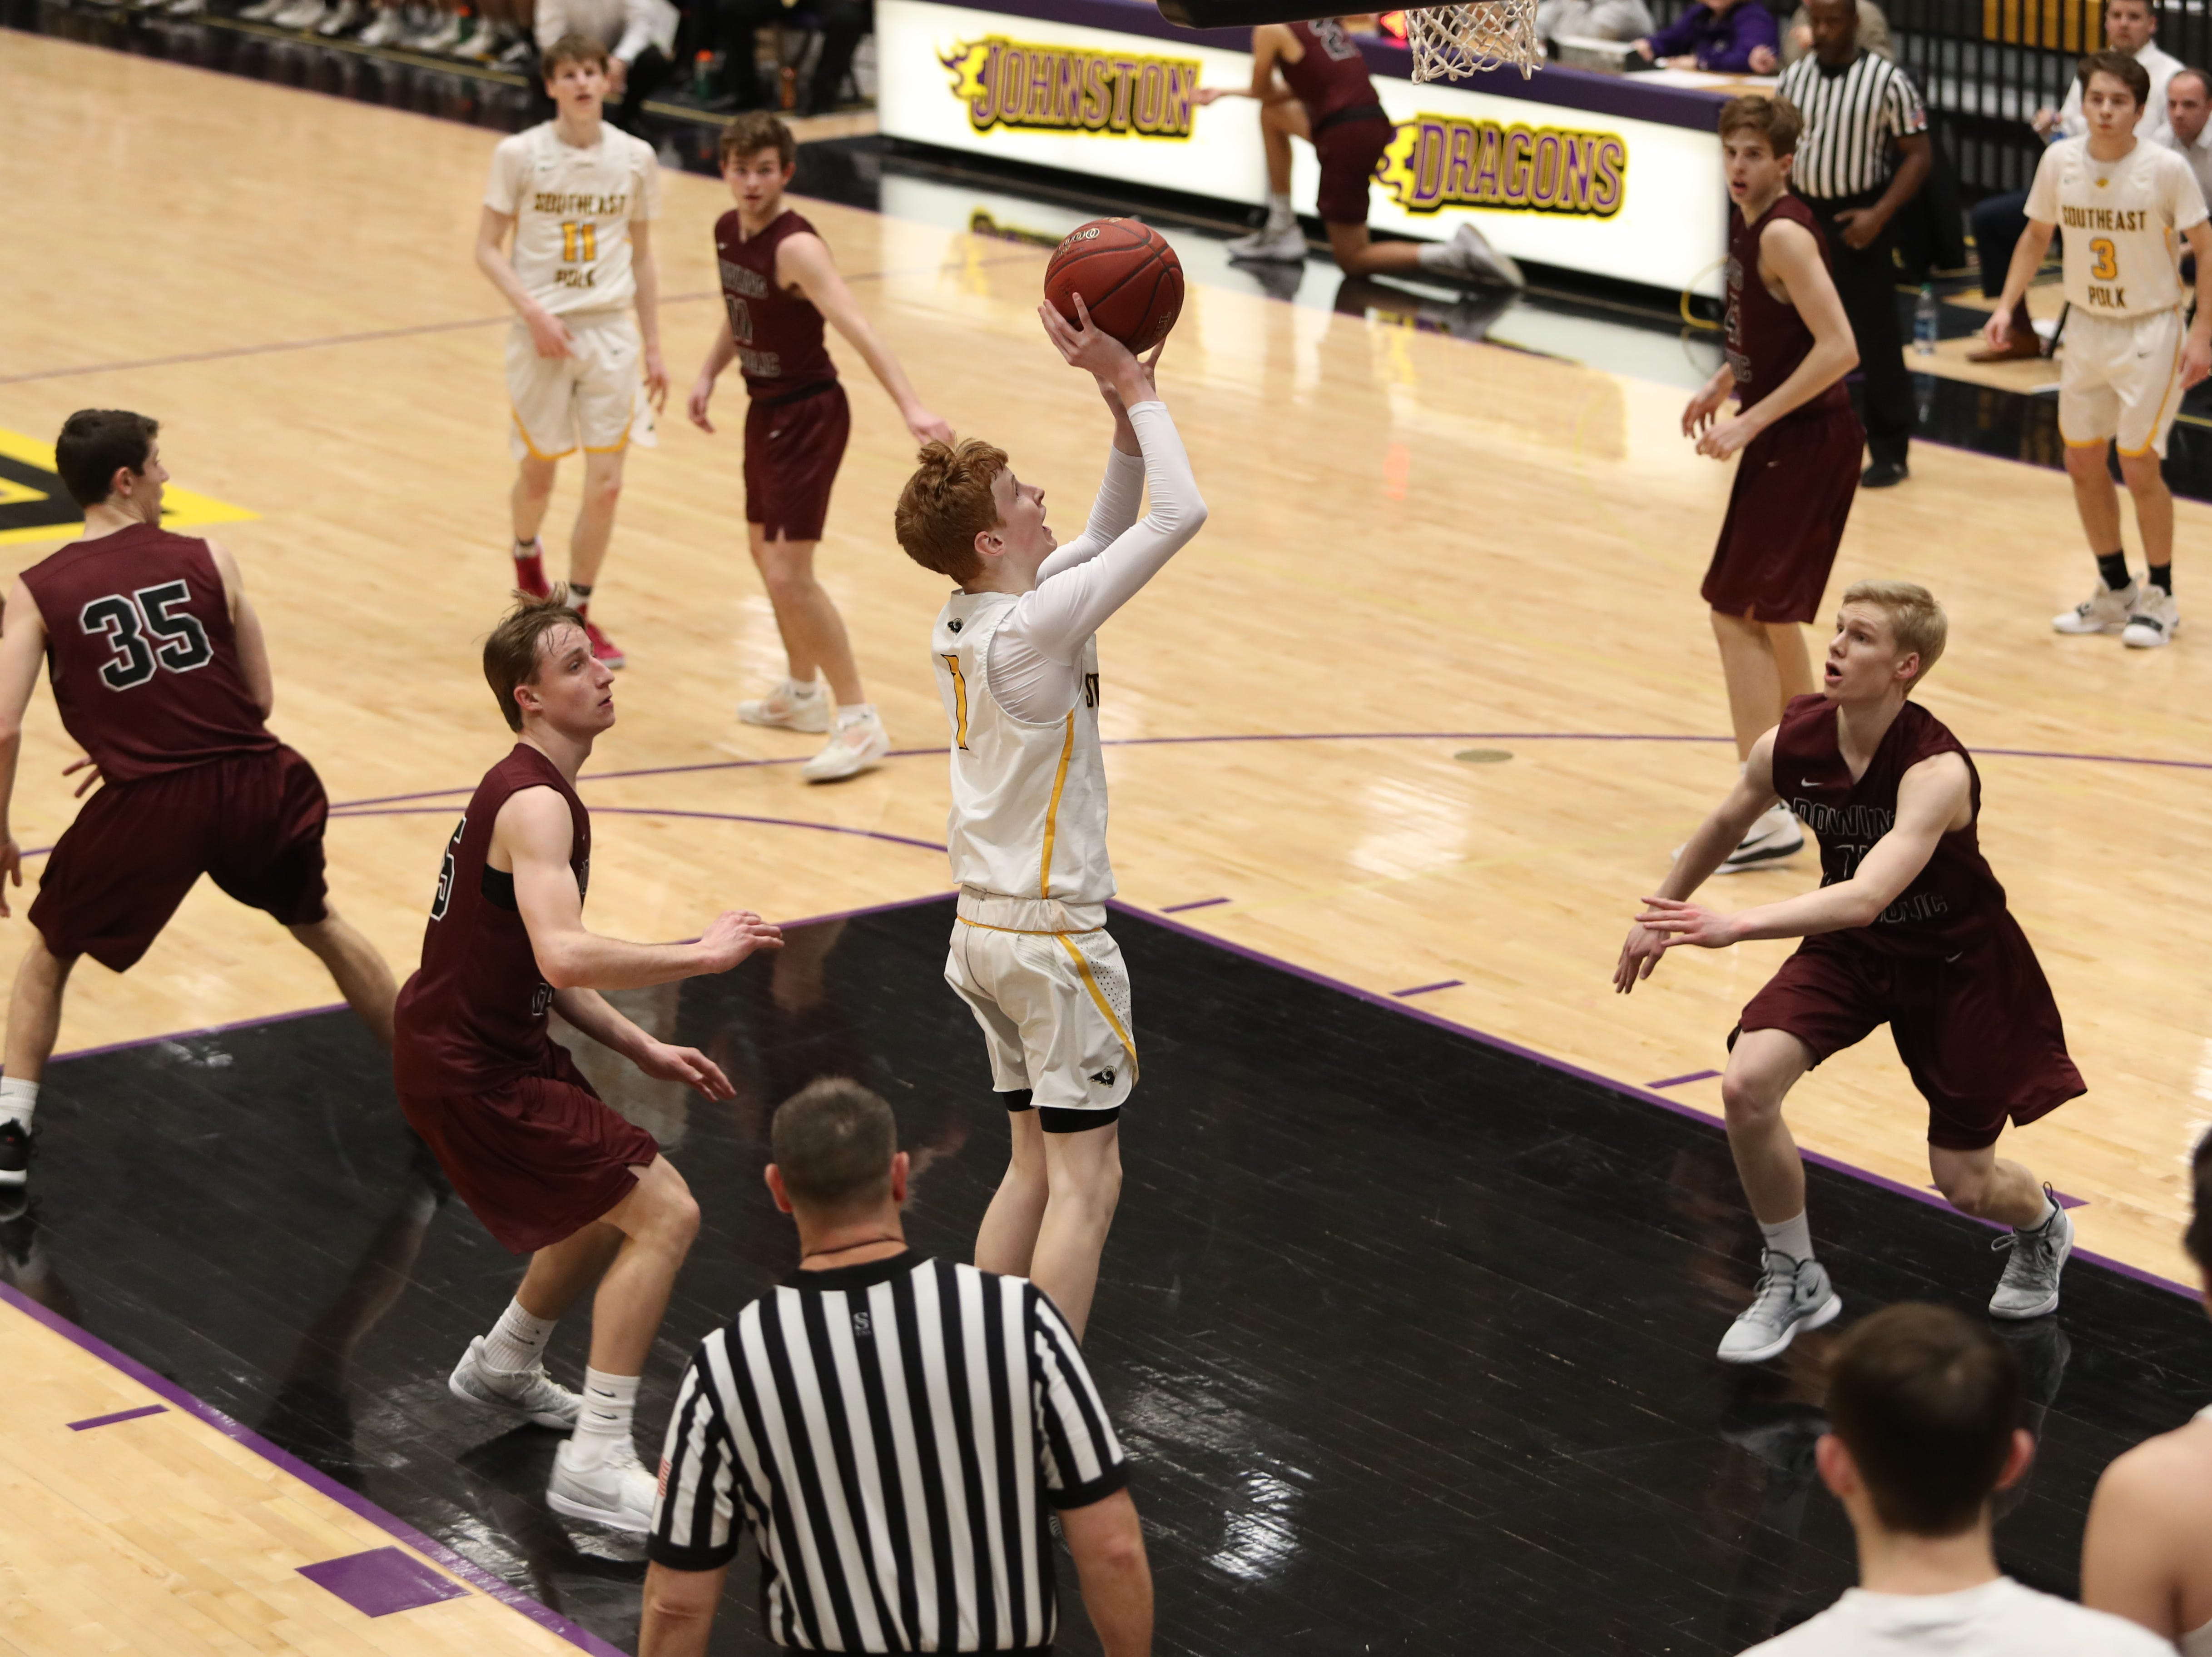 Southeast Polk's James Glenn (1) shoots and scores against Dowling Catholic during their game at Johnston High School in Johnston, Iowa, on Tuesday, Feb. 26, 2019. Dowling won the game 44-40 to advance to state.